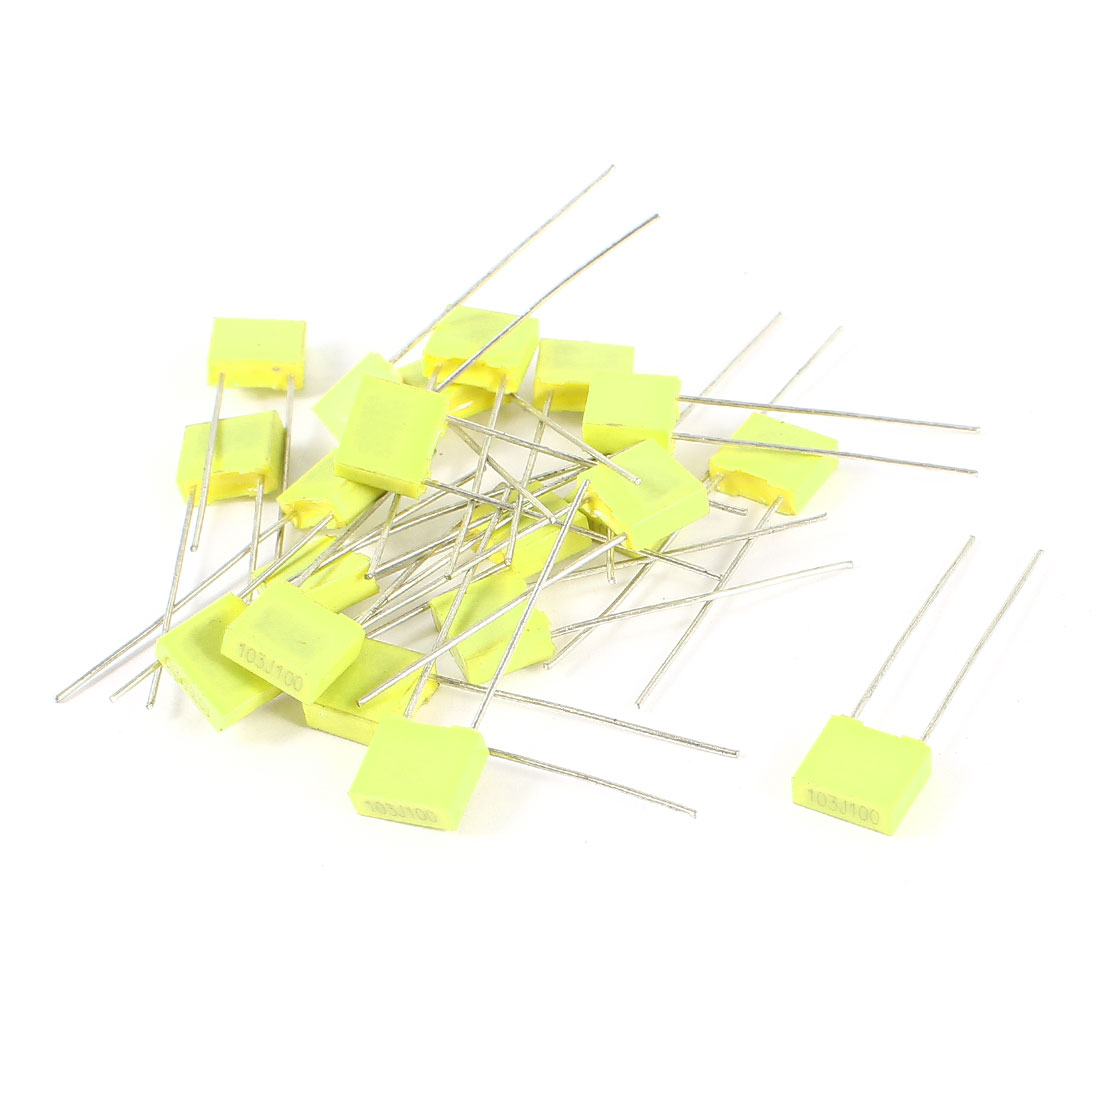 20 Pcs 100V 0.01uF 10NF Radial Lead Box Type Film Correction Capacitors Yellow